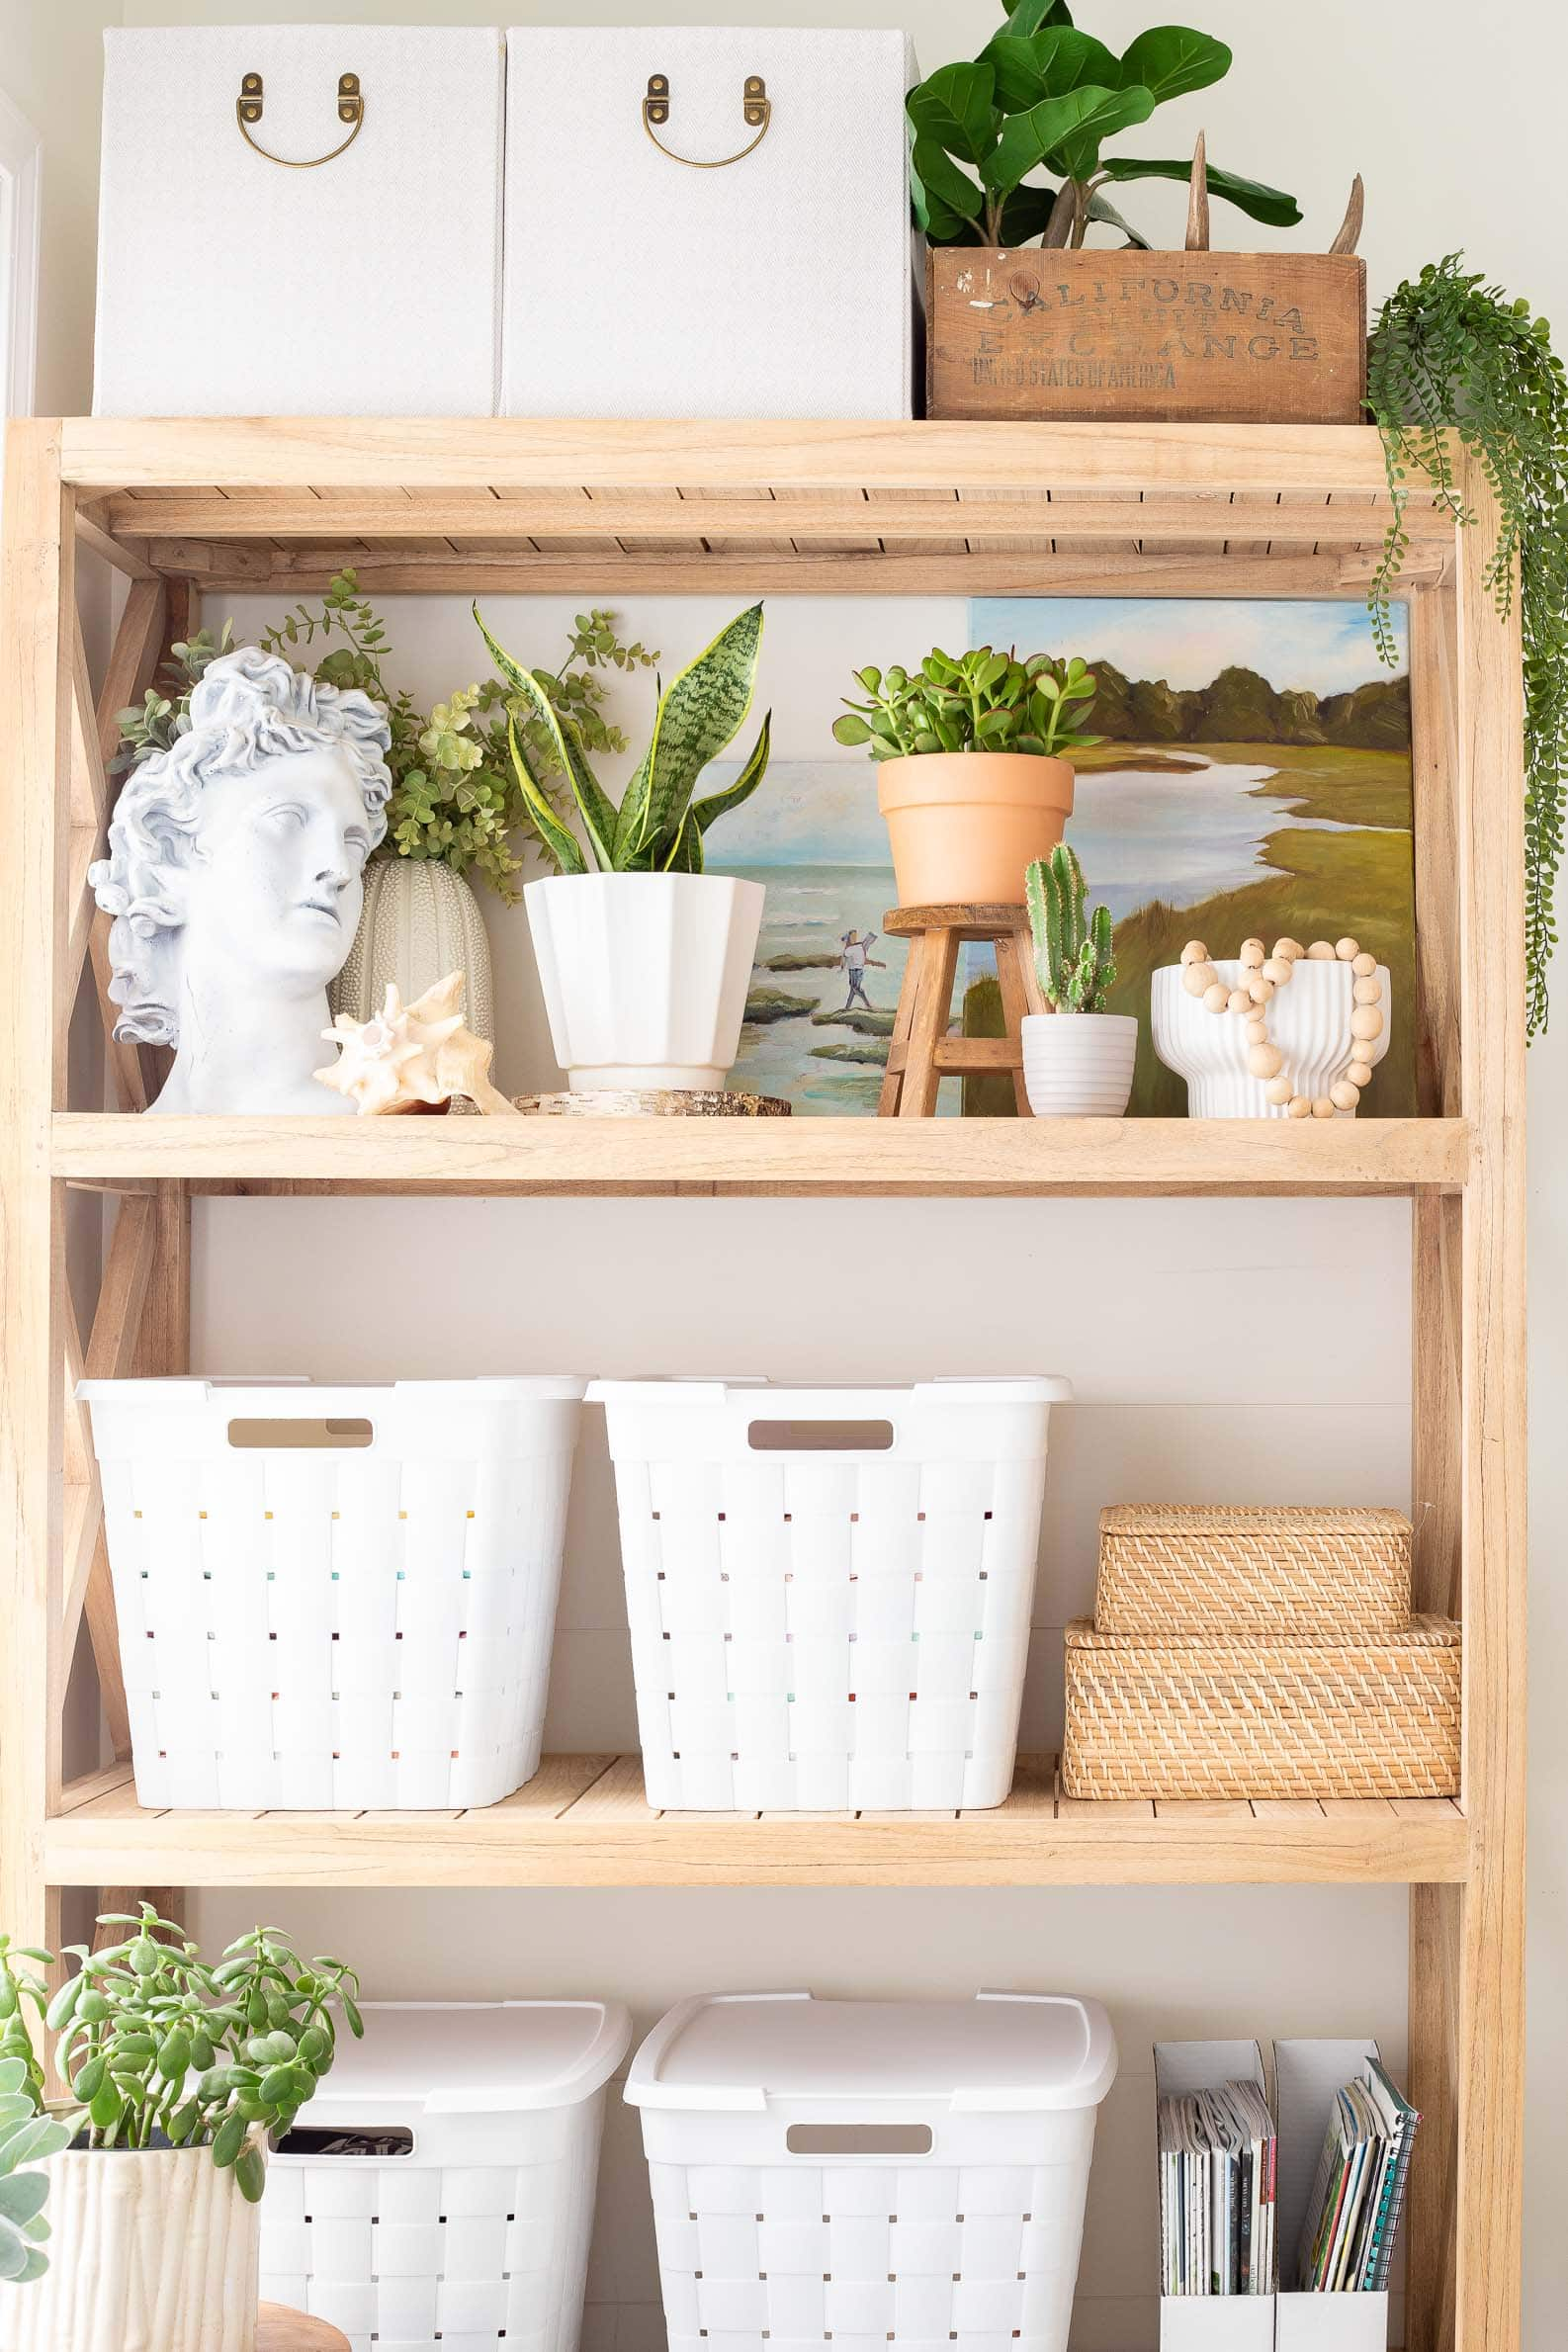 boho home office storage and decorating ideas using natural light wood shelves, bins and baskets